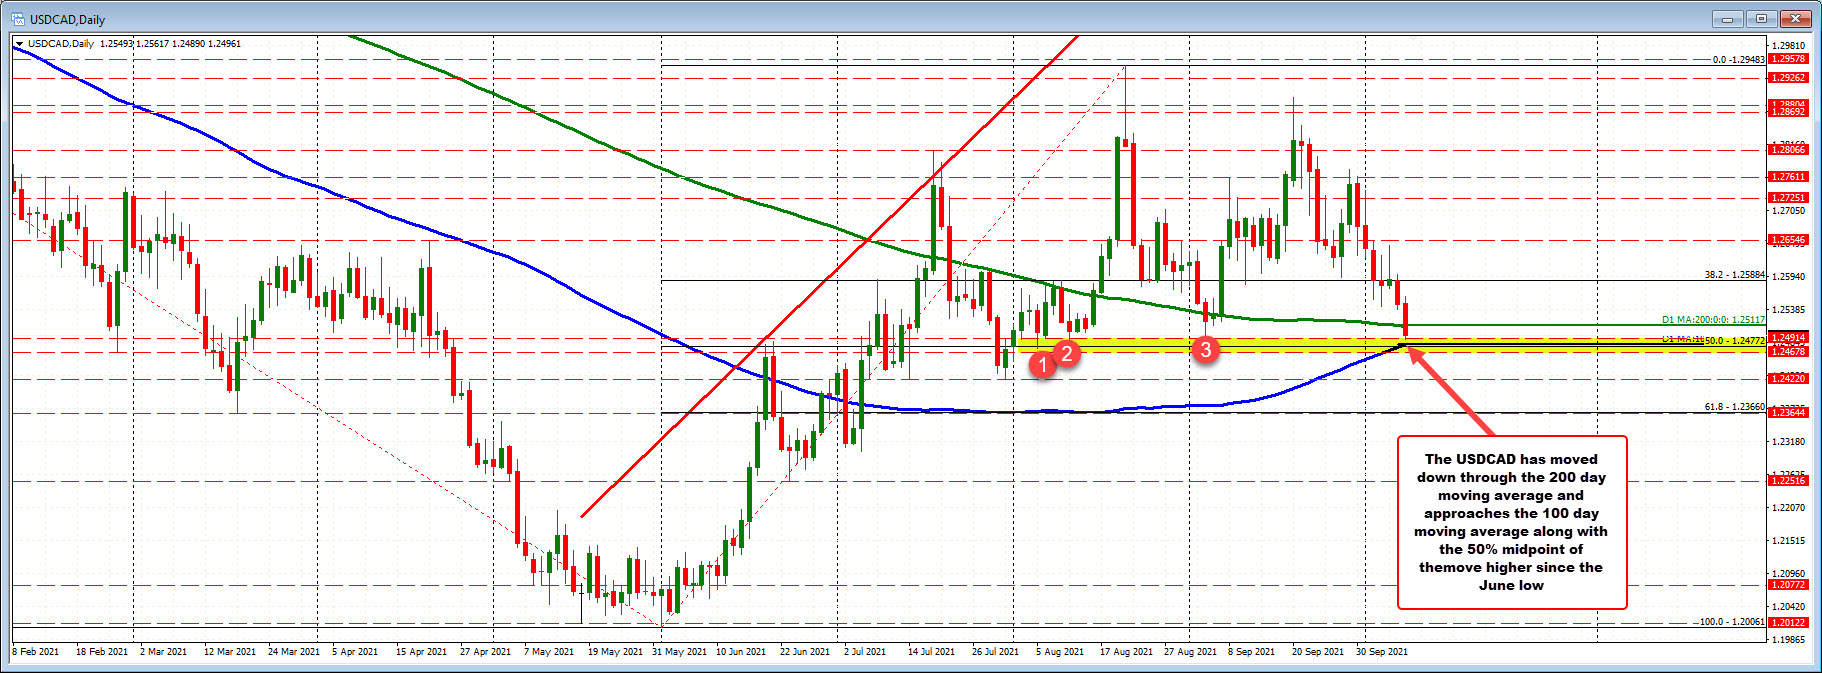 The USDCAD is below its 200 day moving average